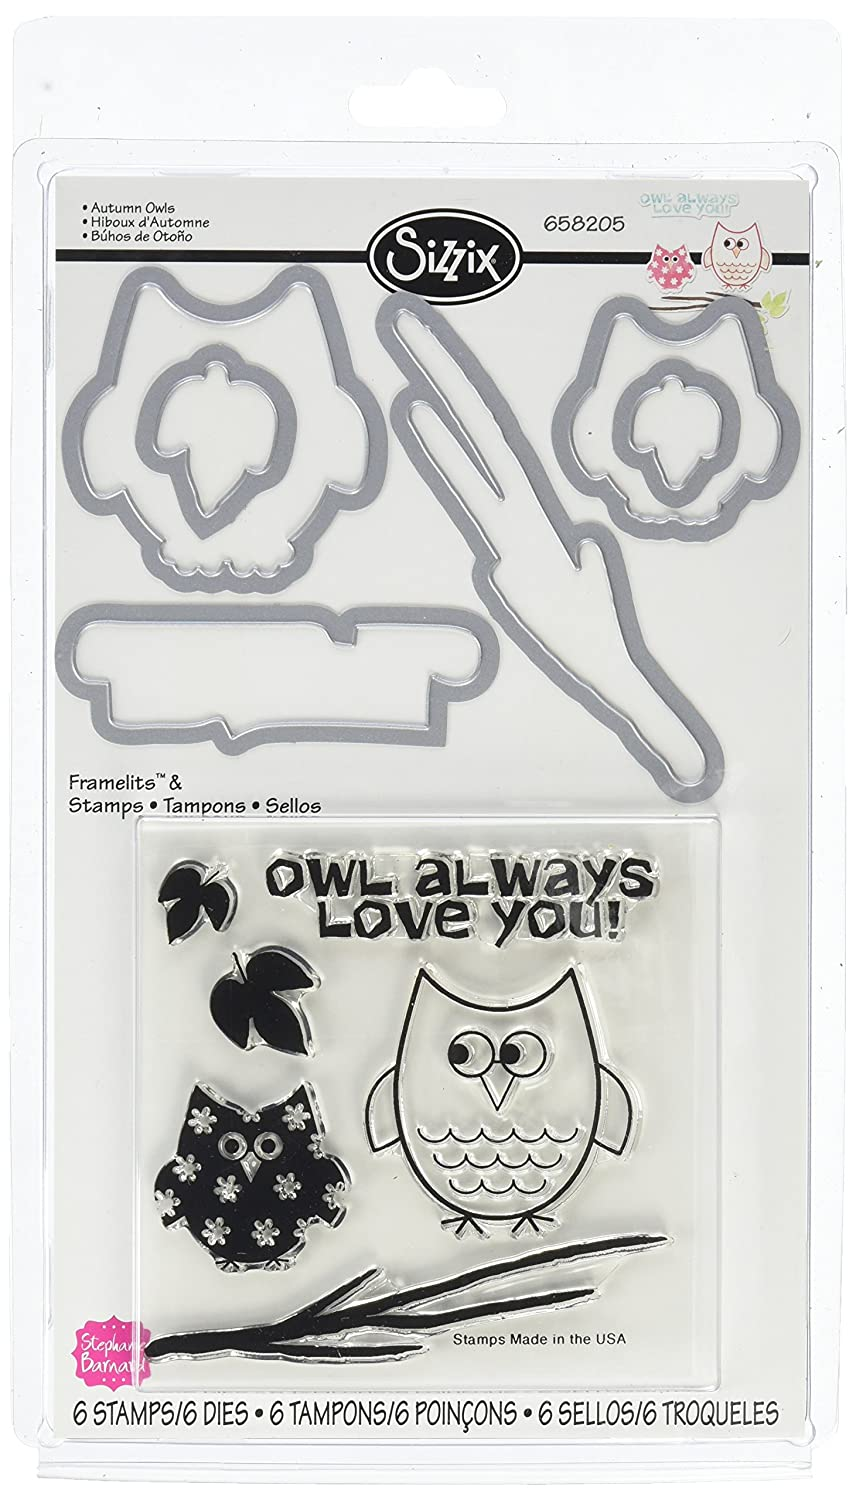 Sizzix Framelits Dies with Clear Stamps, Autumn Owls, 6/Pack Sizzix (SIZZ0) 658205